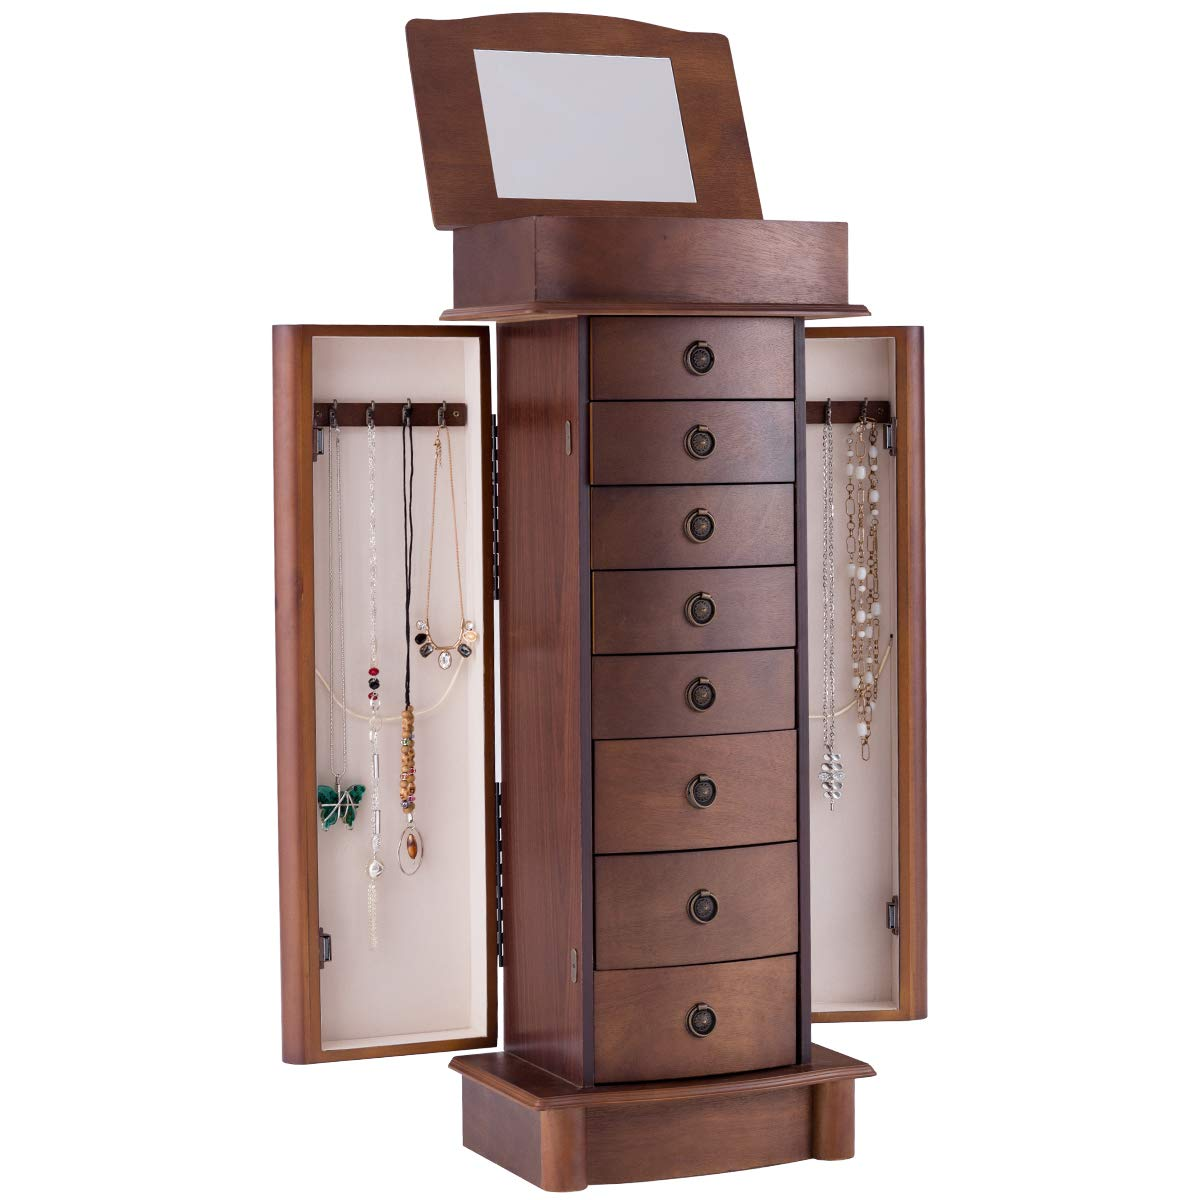 Giantex Jewelry Armoire Cabinet Stand with 8 Drawers,Top Divided Storage Organizer with Flip Makeup Mirror Lid Large Side Door Chest Cabinets, Antique Wood Standing Armoires Jewelry Box w/ 8 Hooks